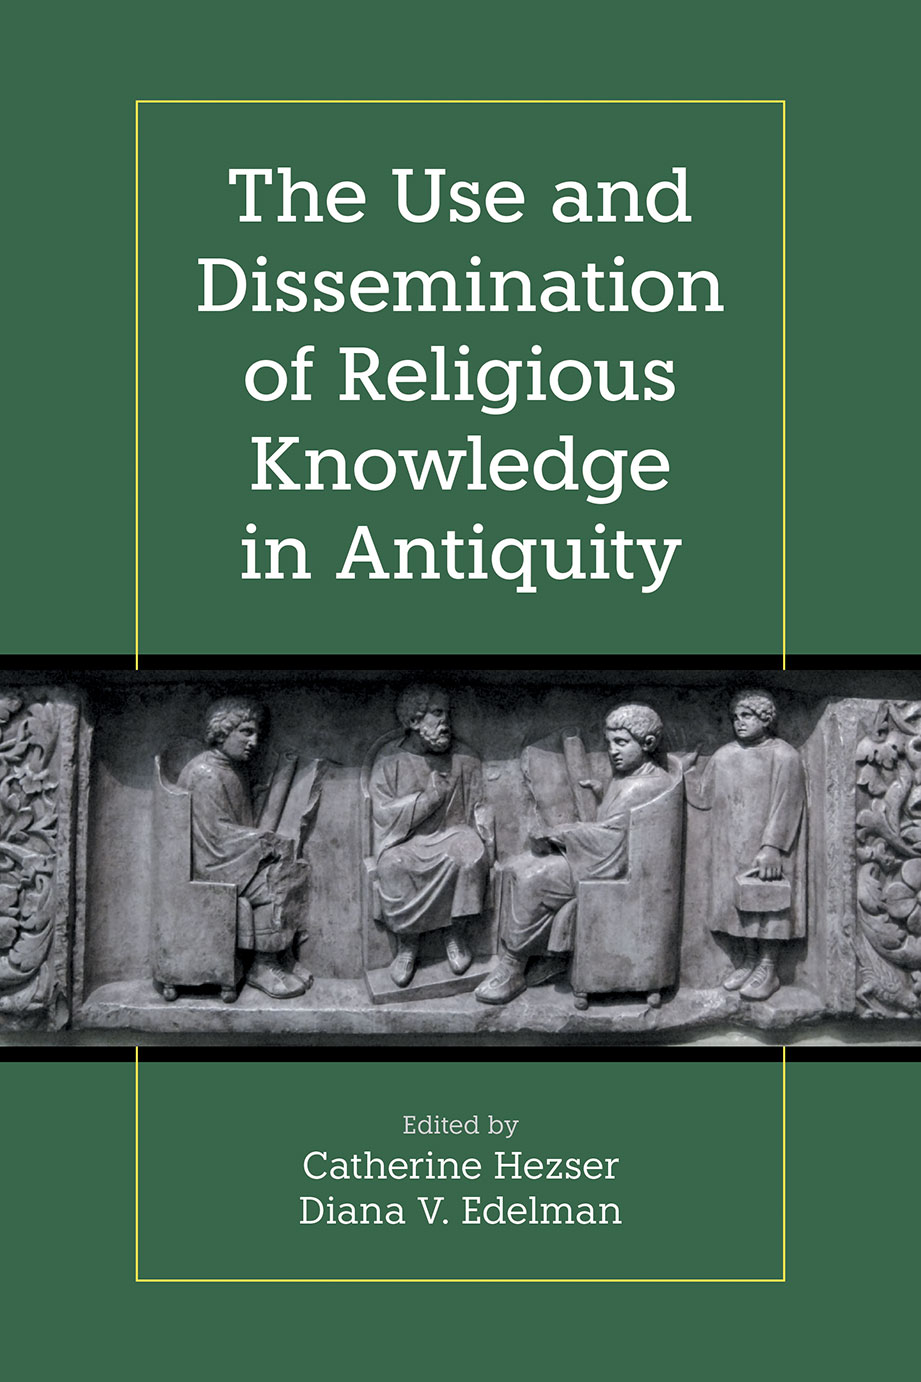 The Use and Dissemination of Religious Knowledge in Antiquity